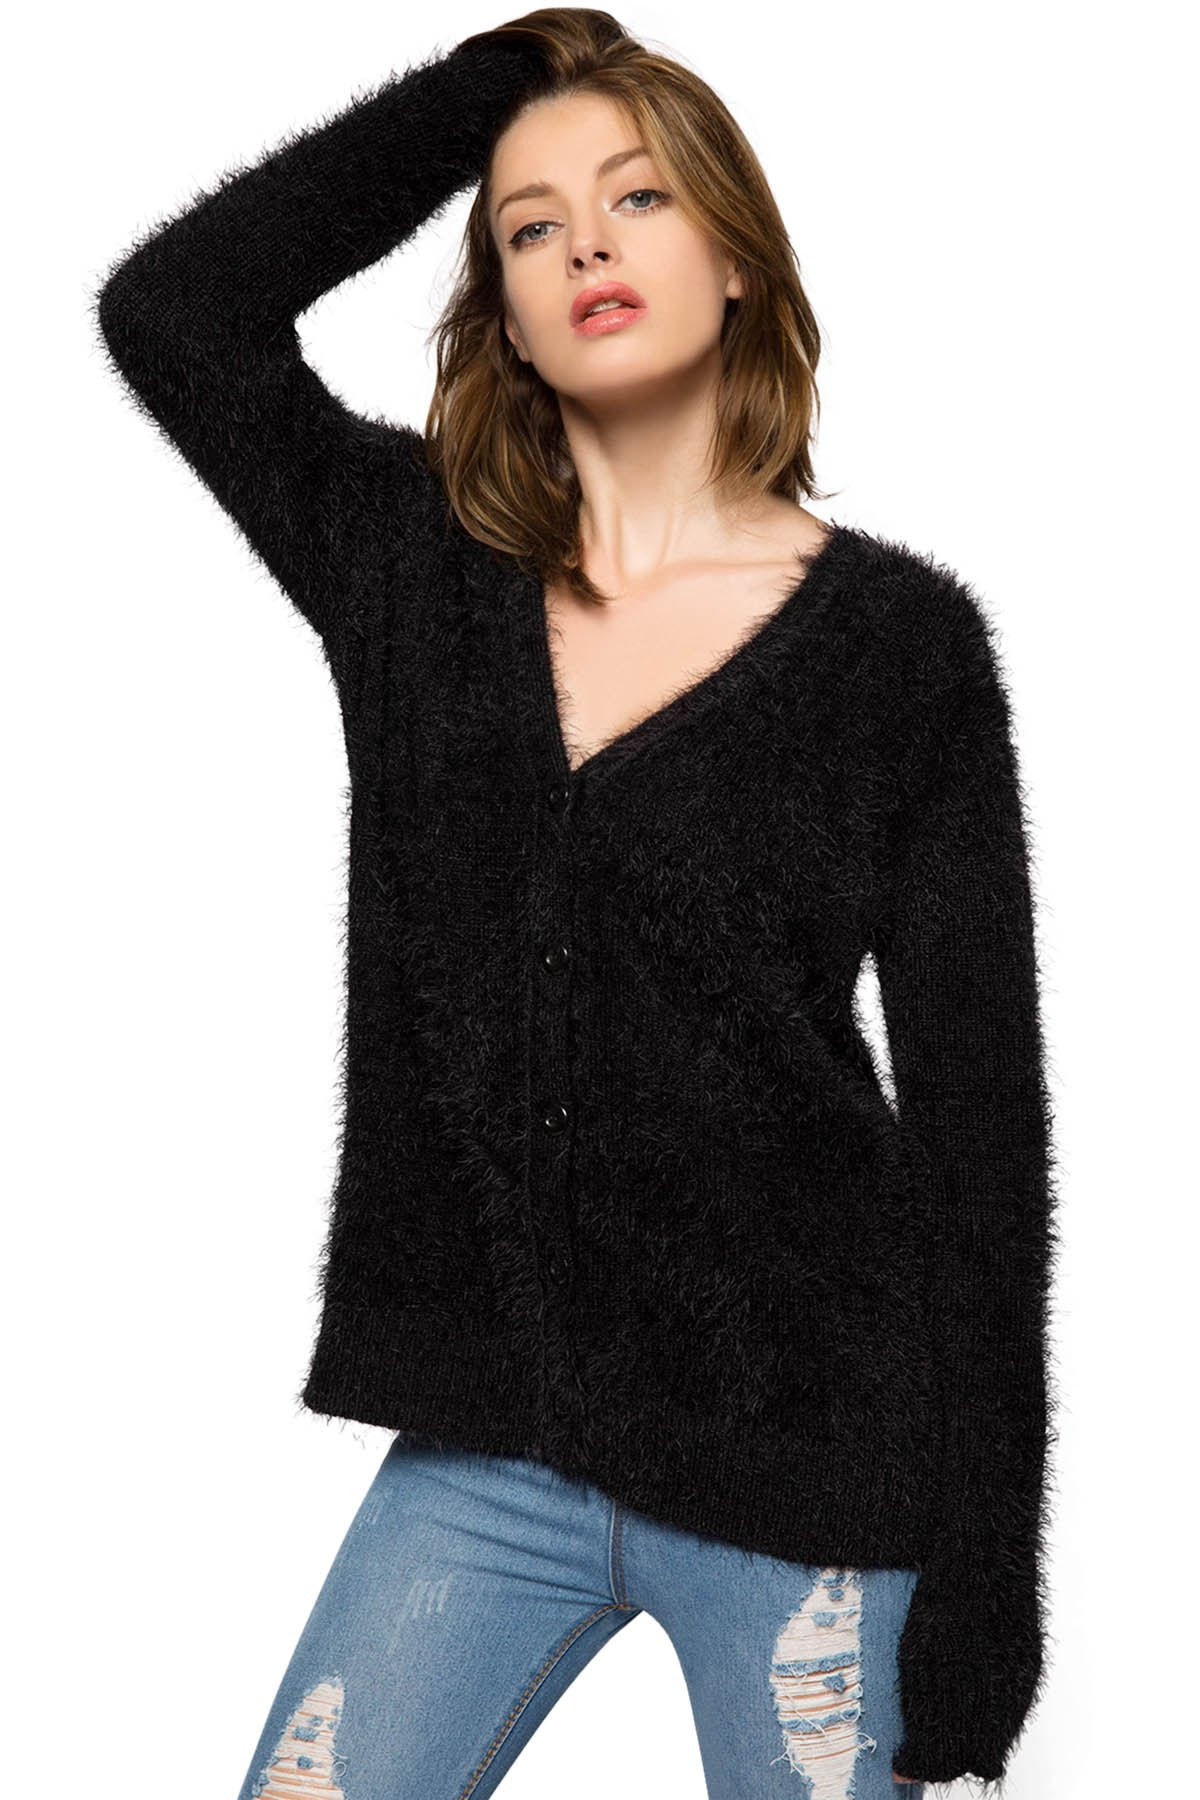 Black Long Sleeve Mohair Cardigan - BLACK XS